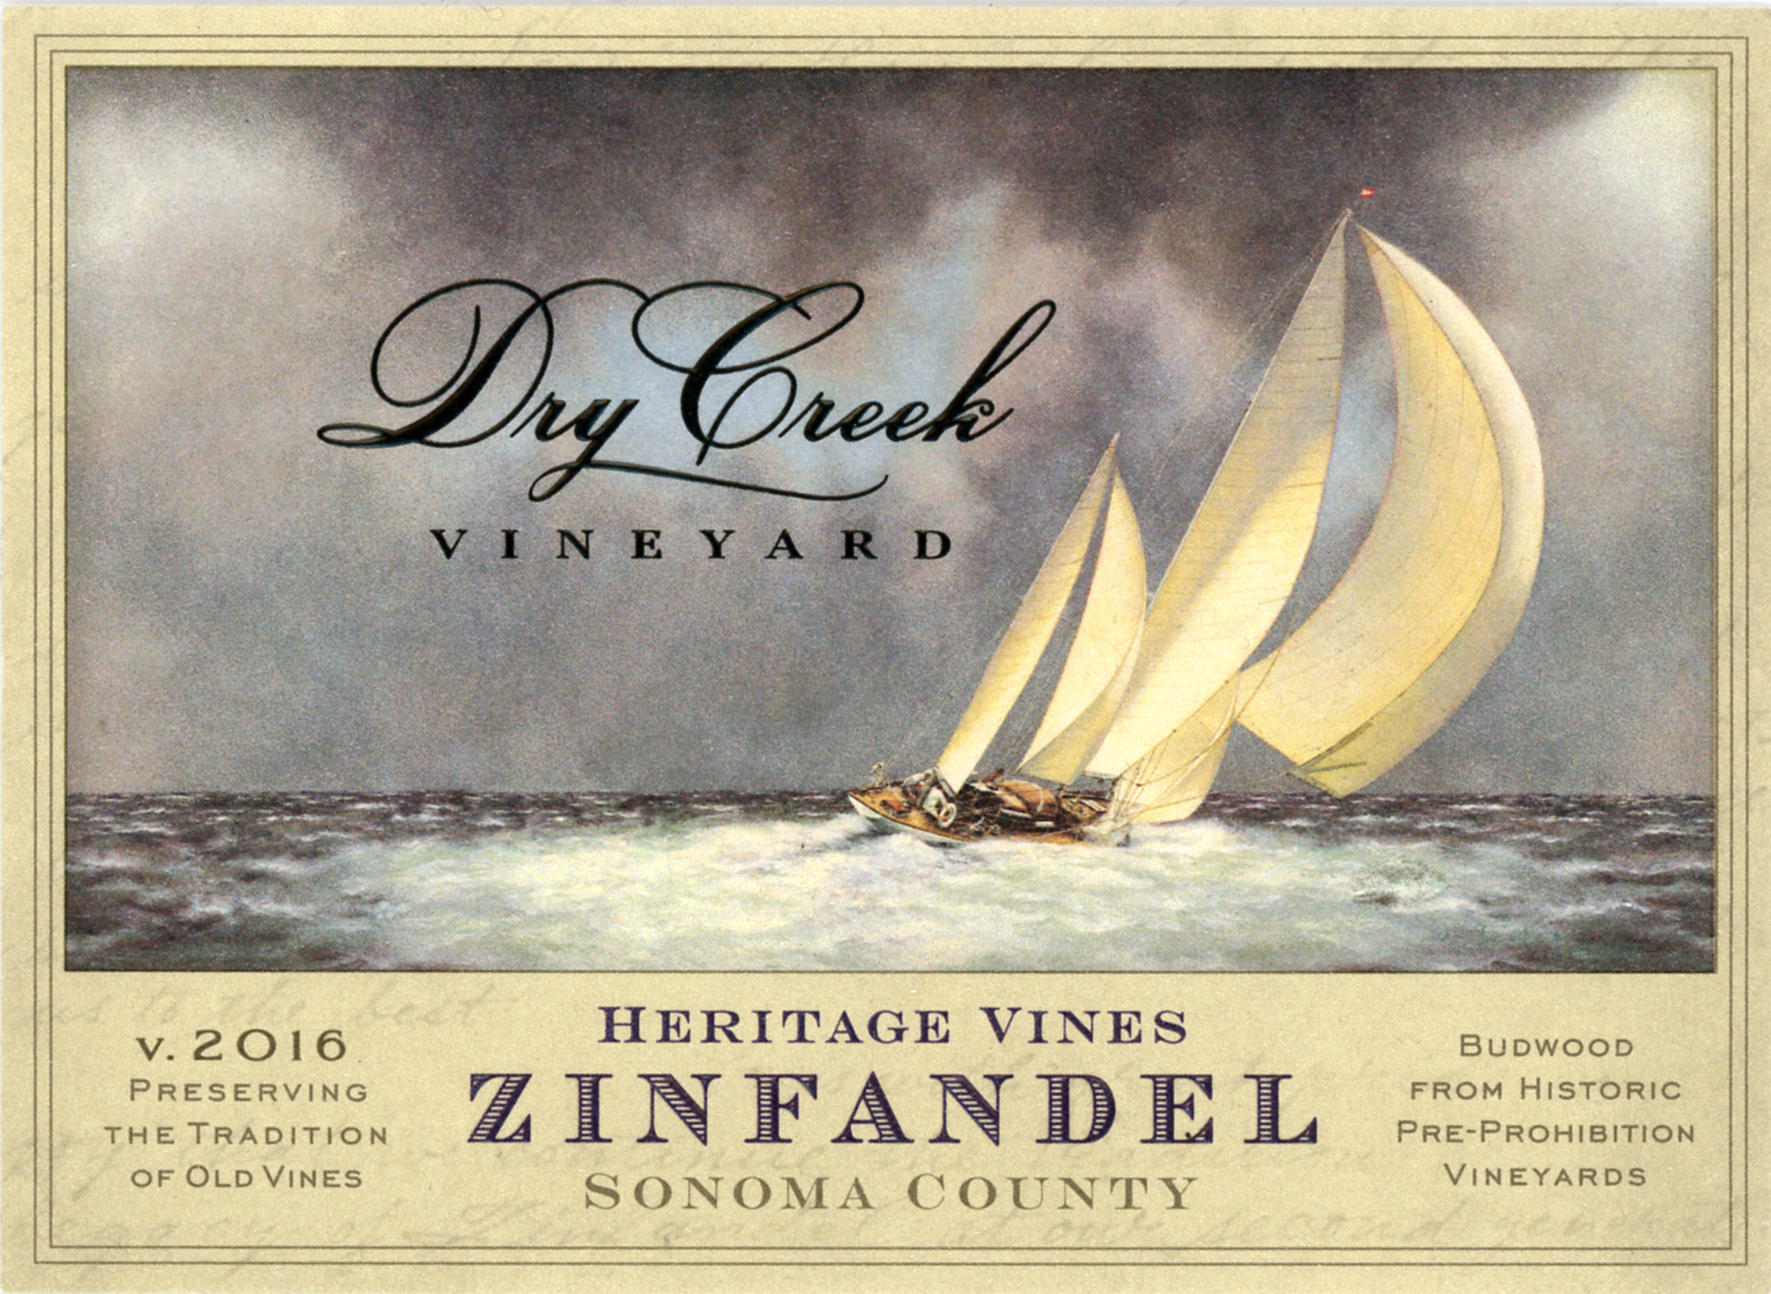 2015 Dry Creek Vineyard Zinfandel Heritage Vines